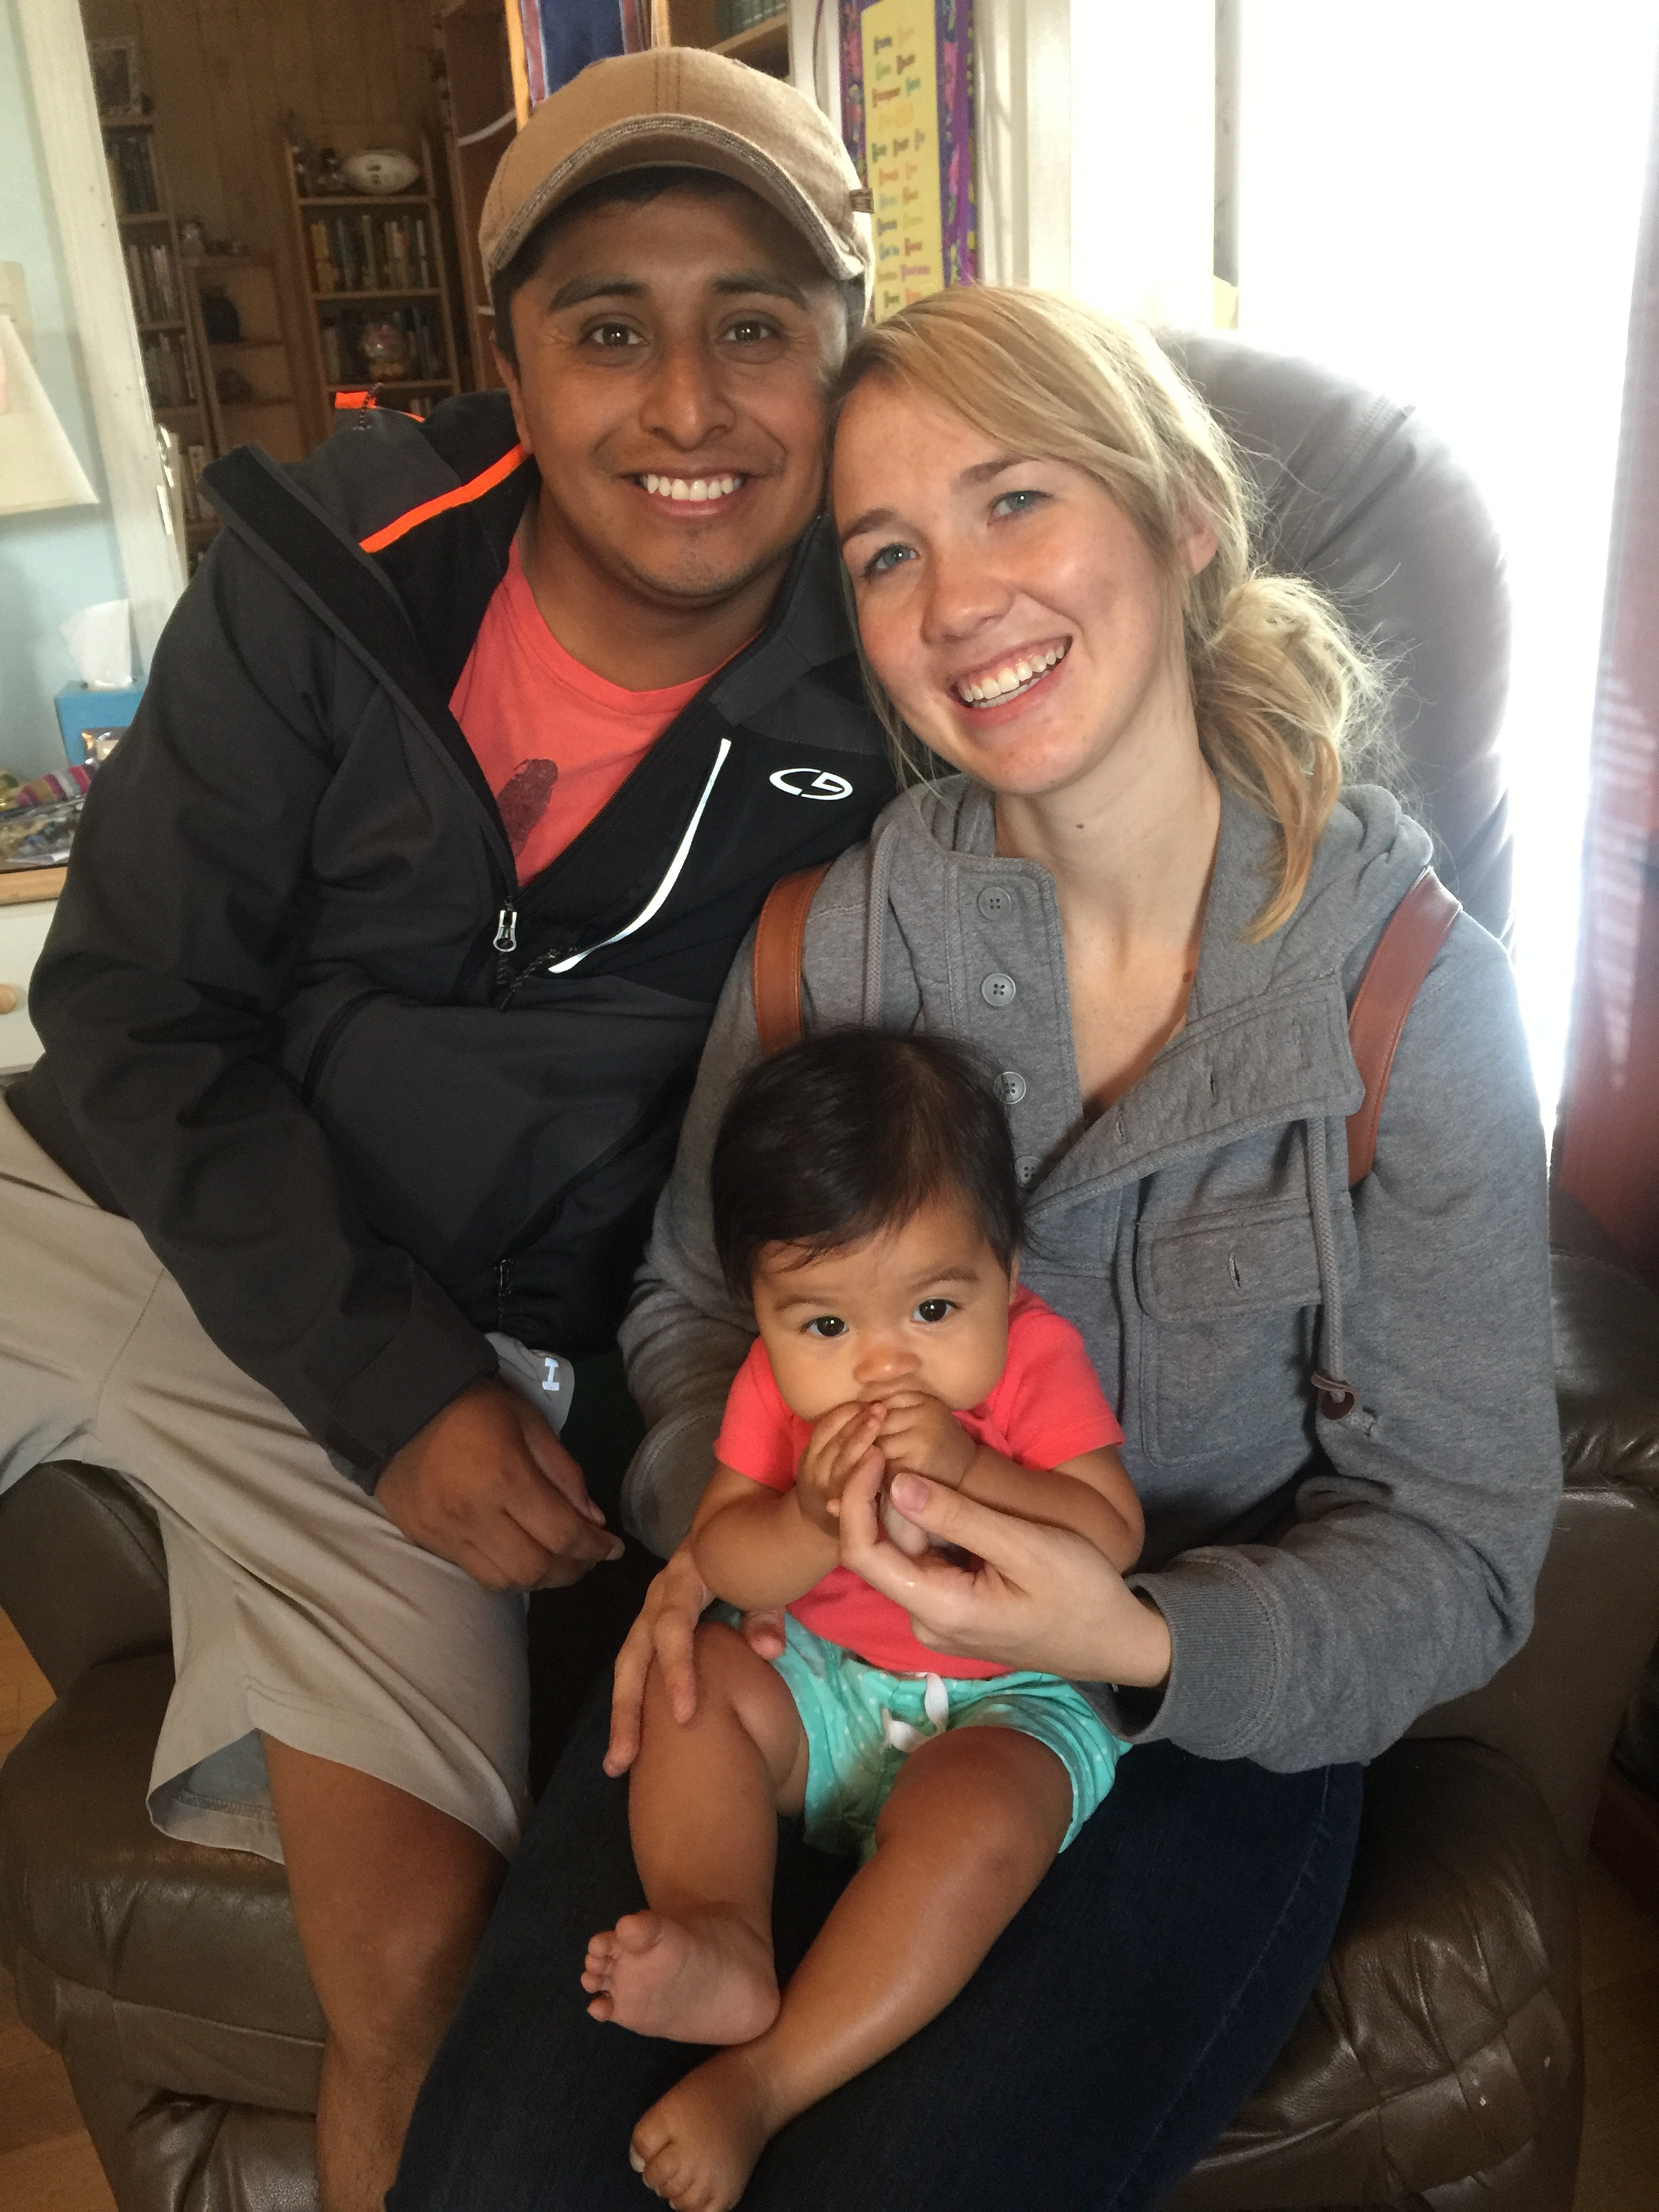 Pedro (with wife & child) left 7 years ago & is returning to Guatemala as a Christian minister having graduated Seminary & Collage in Tn.